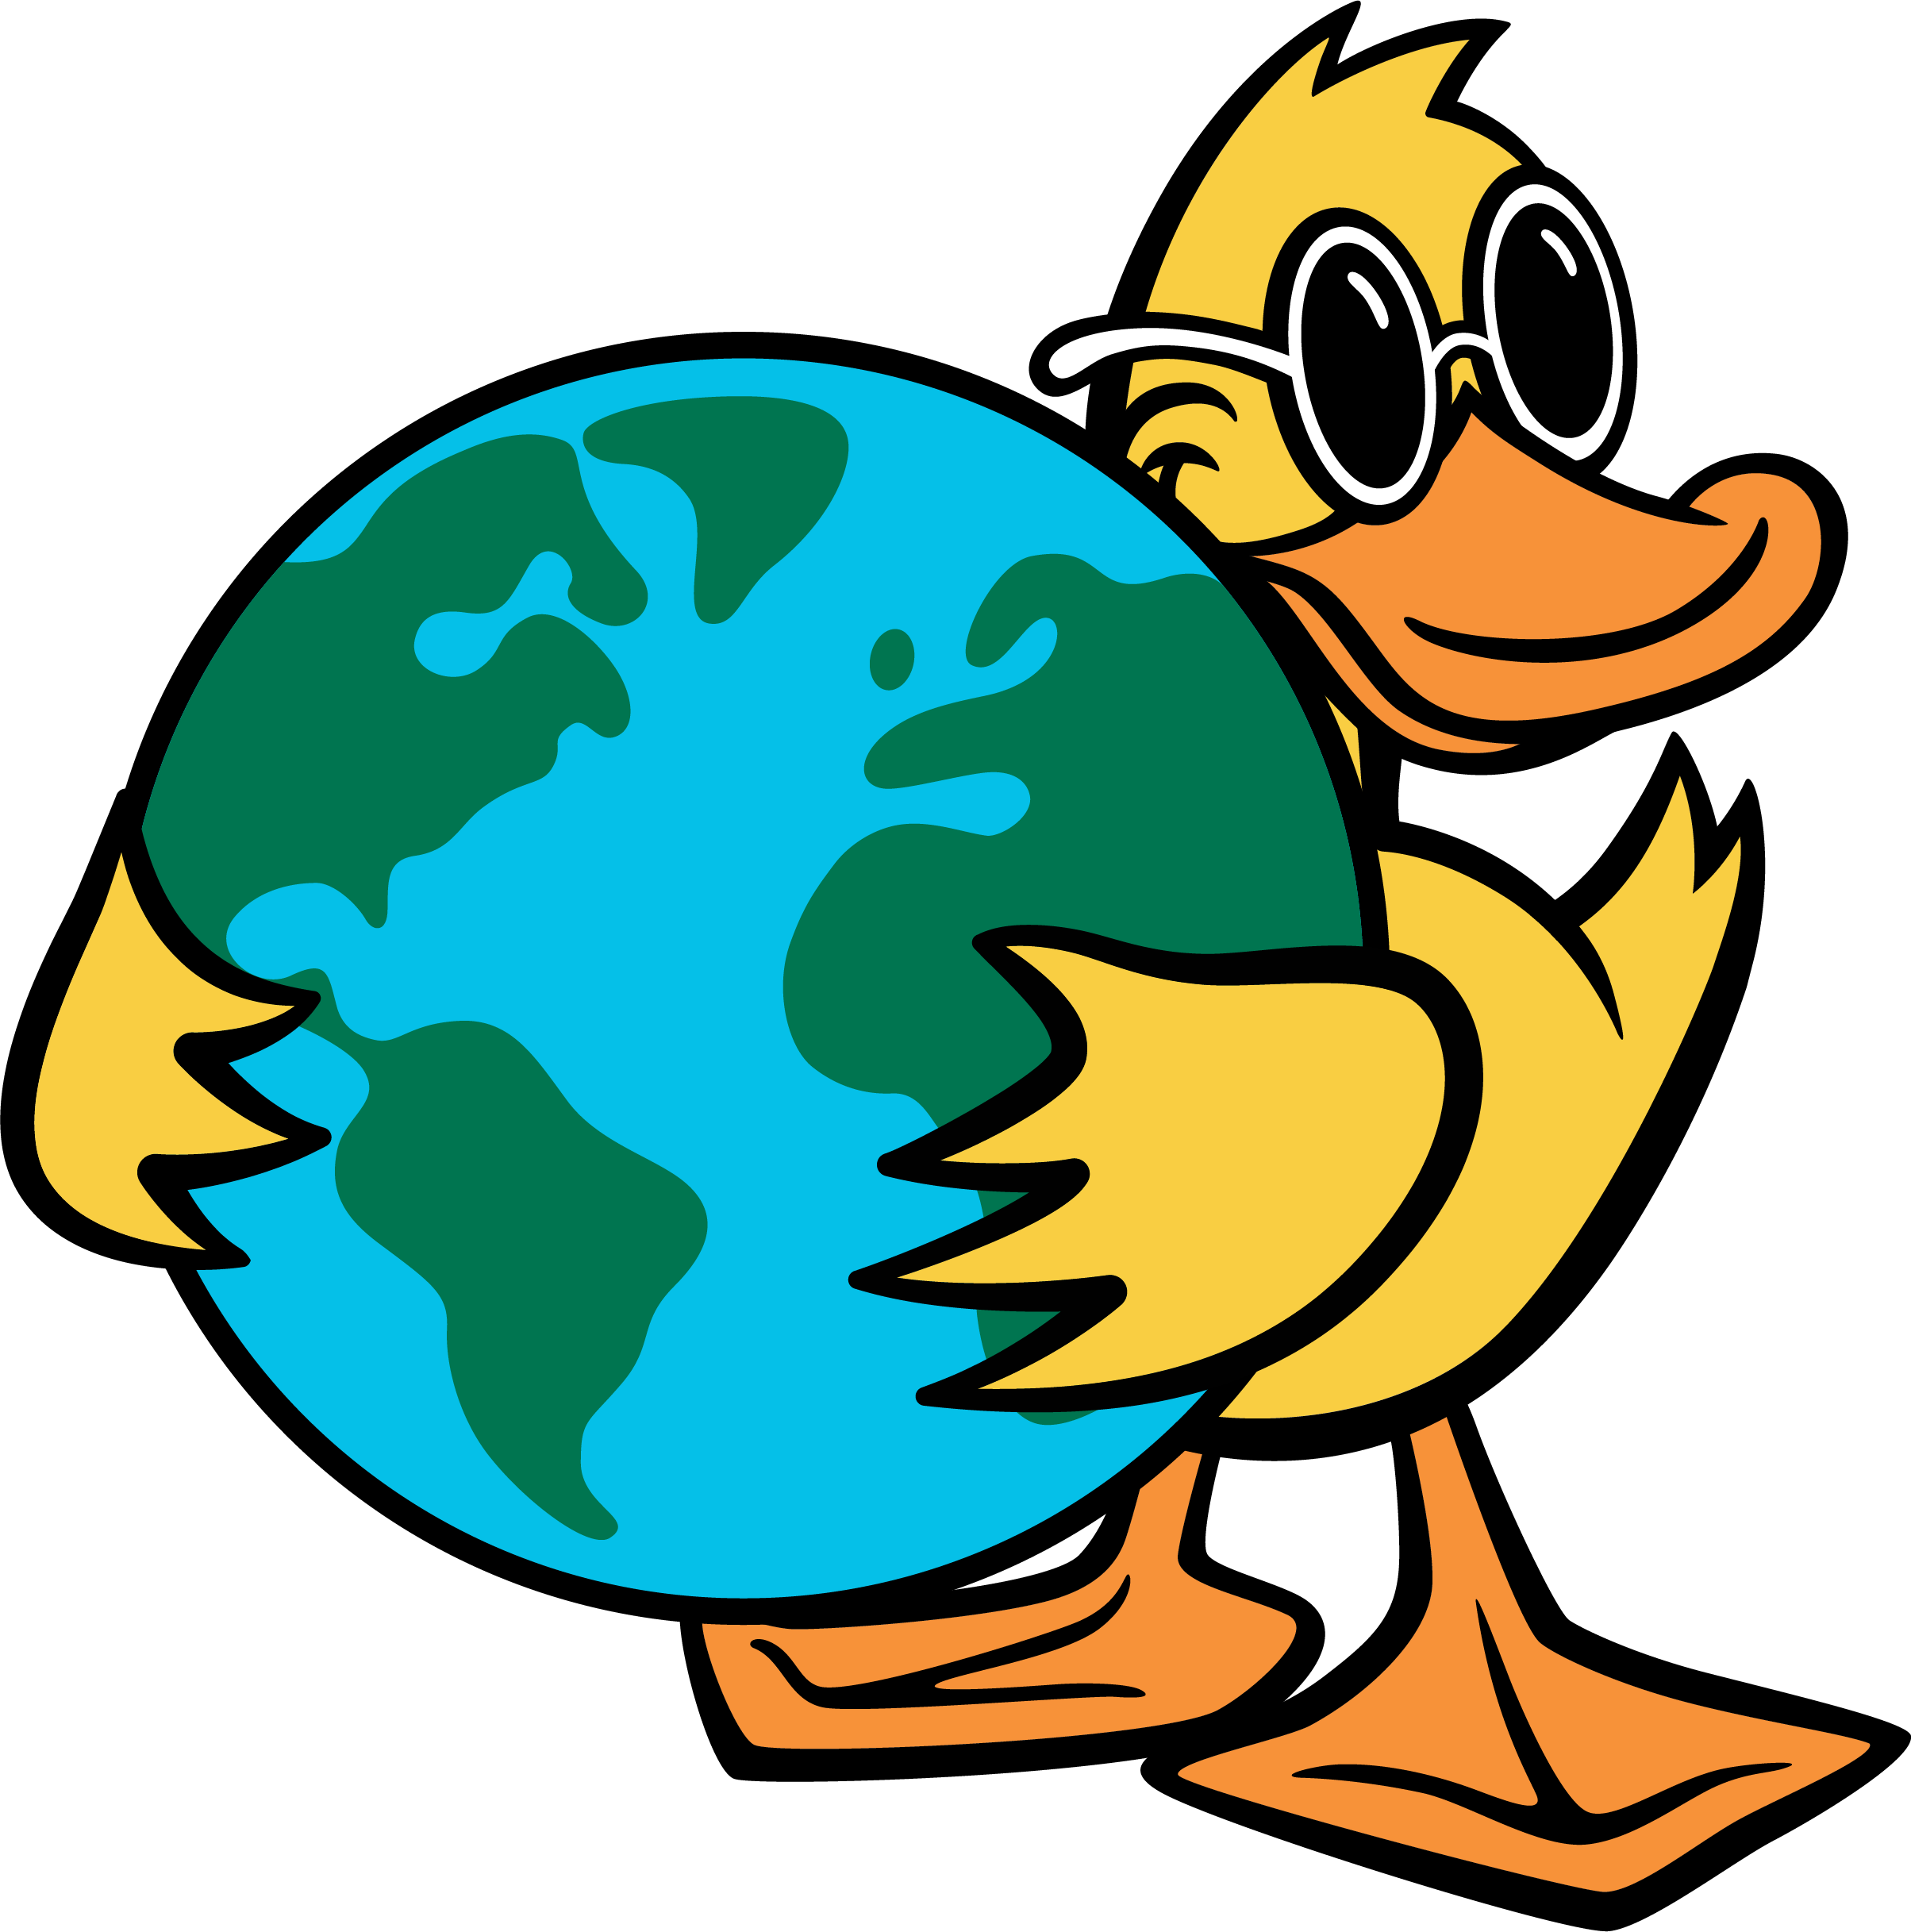 Duck Mascot Holding Earth